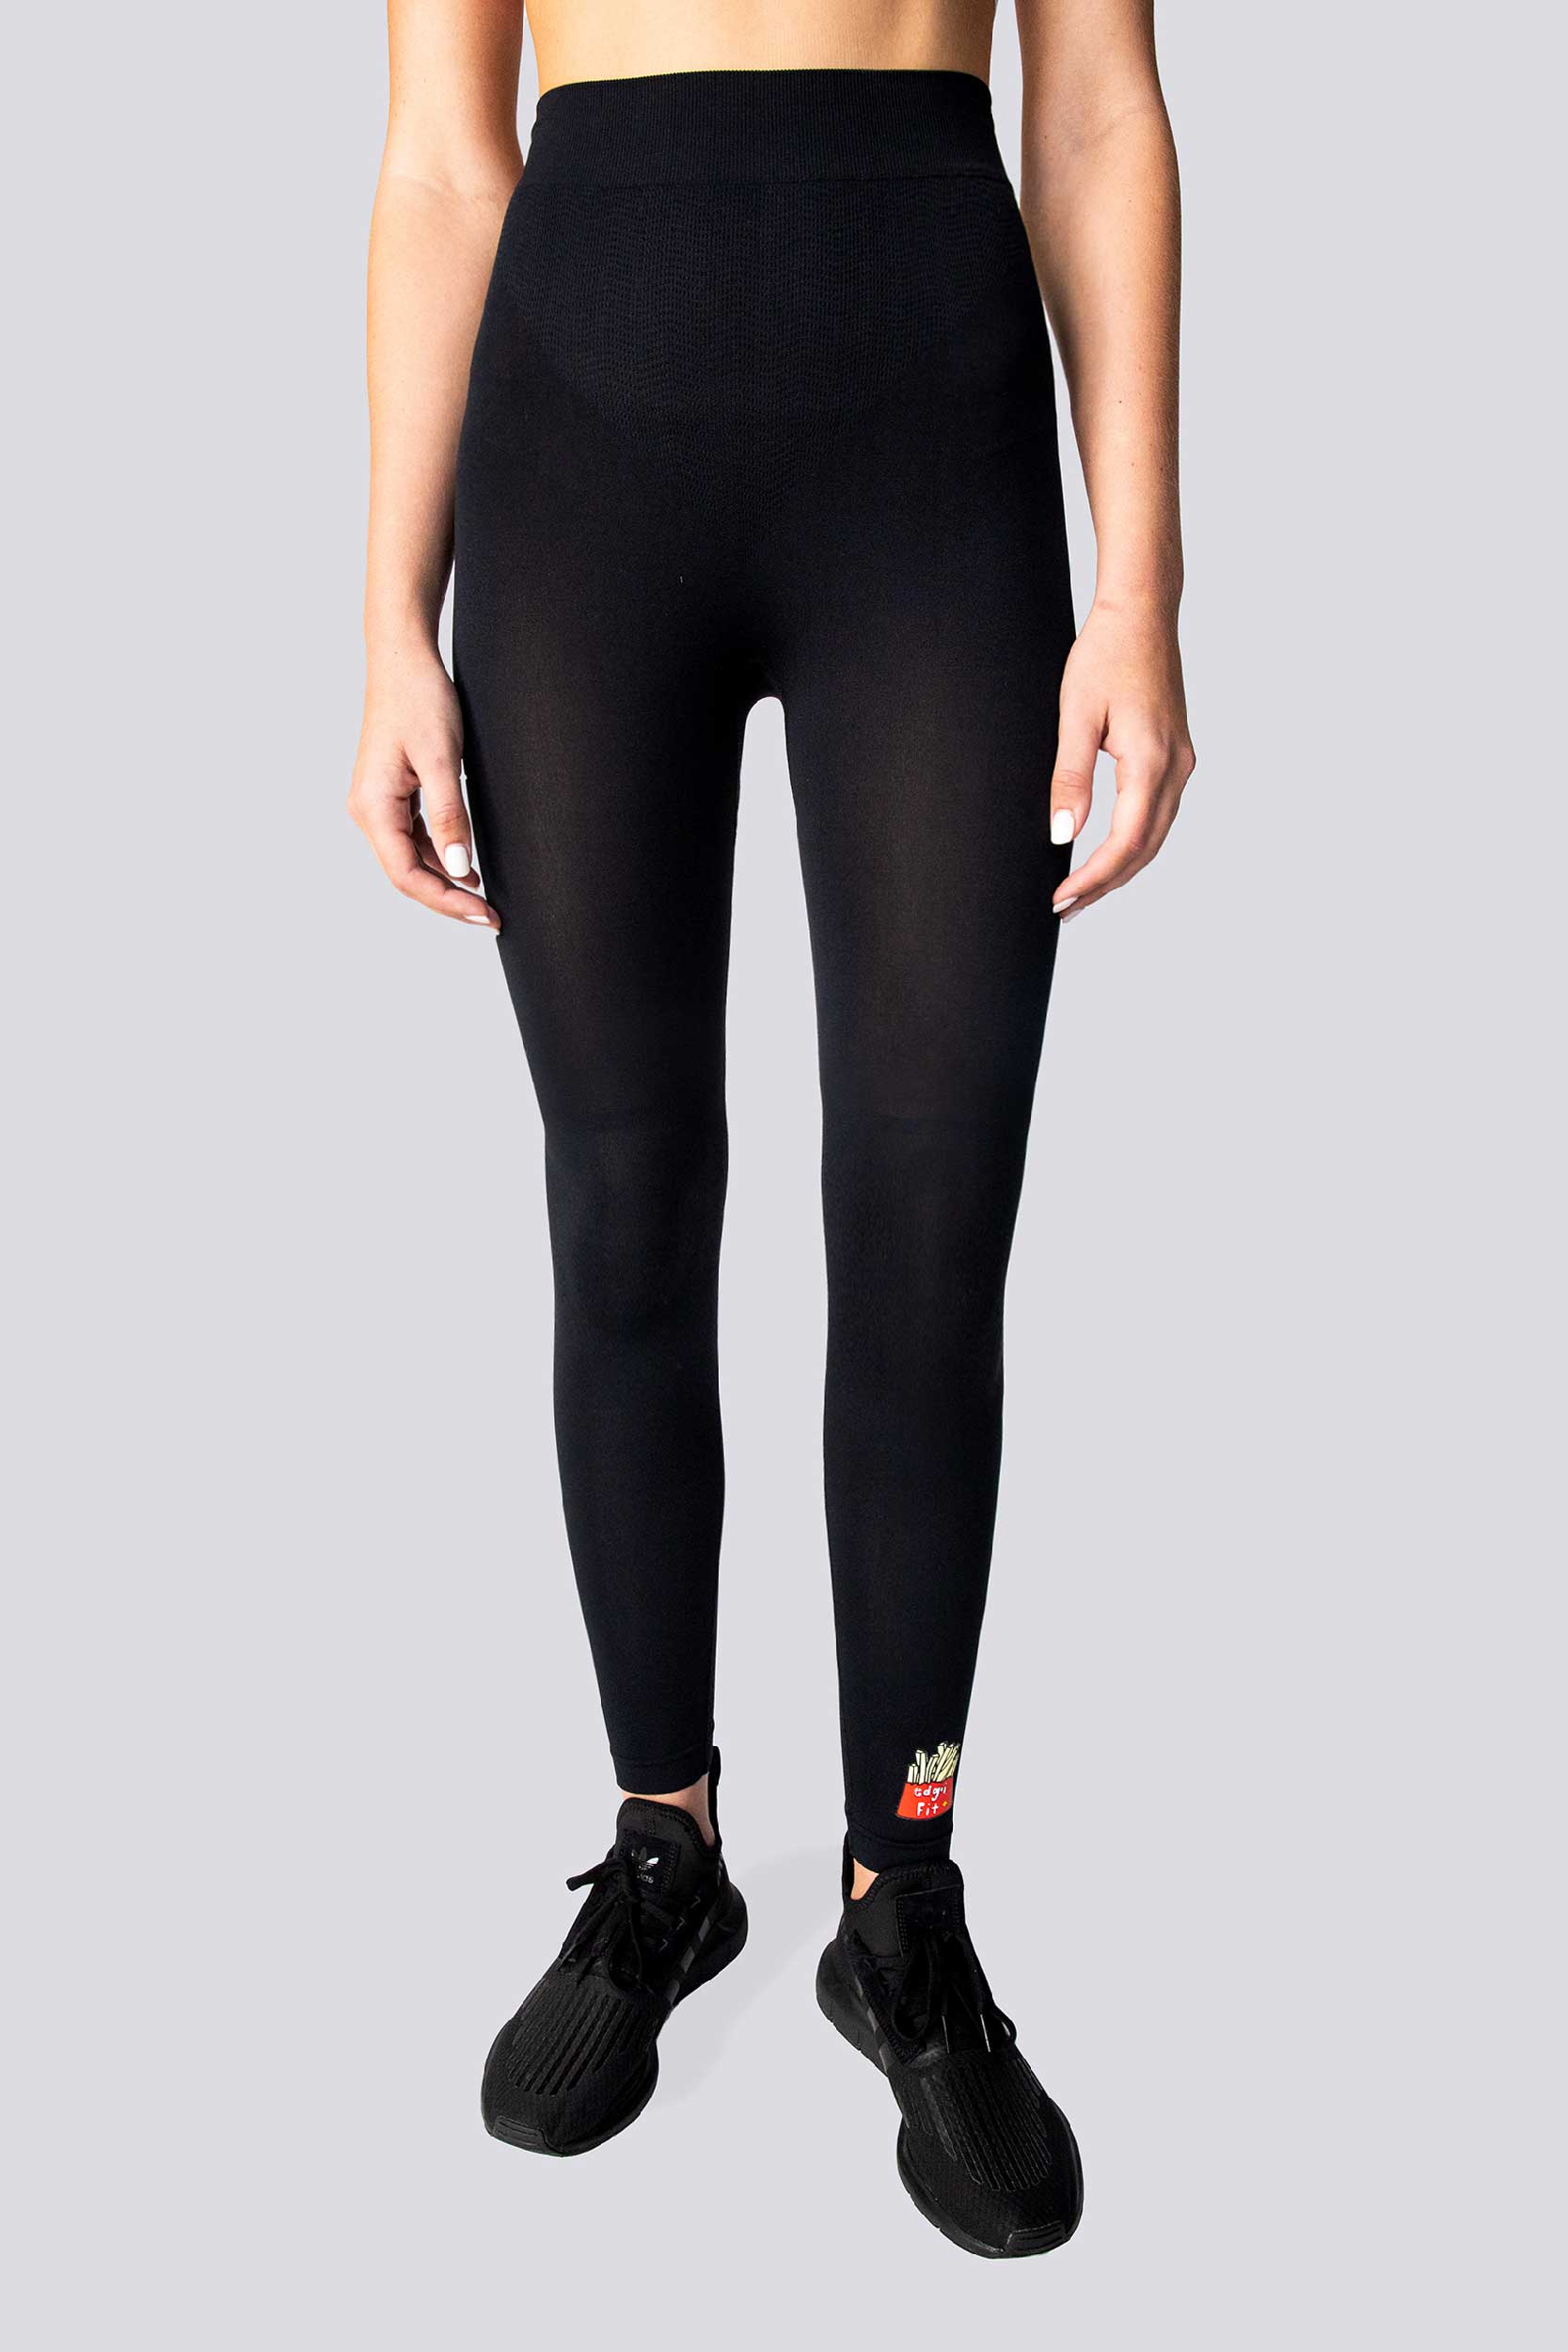 EDGII FIT⁺ basic chips logo legging